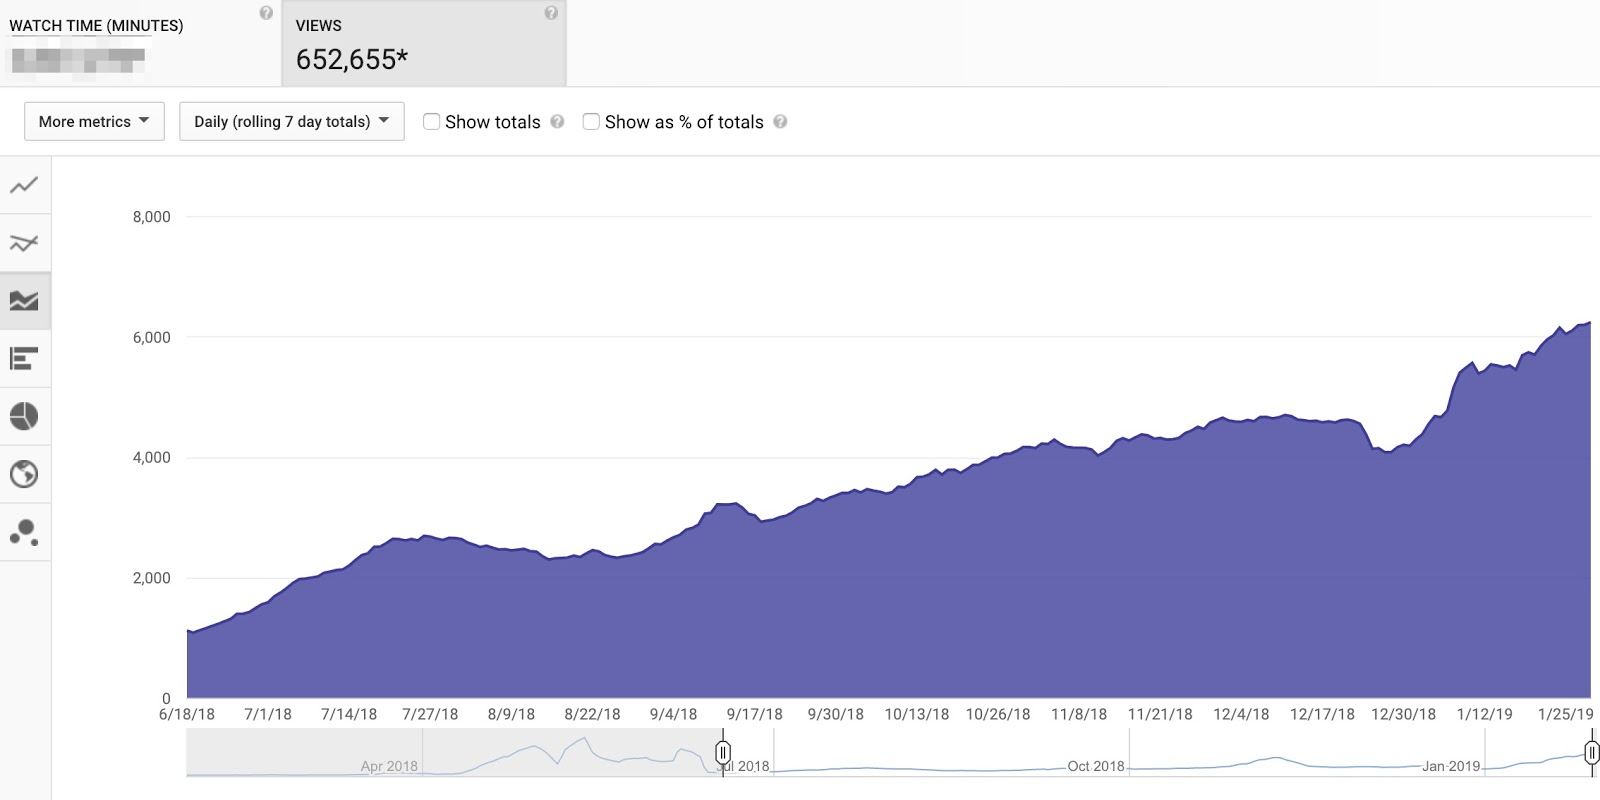 Video Seo by Ahrefs search traffic from YouTube.